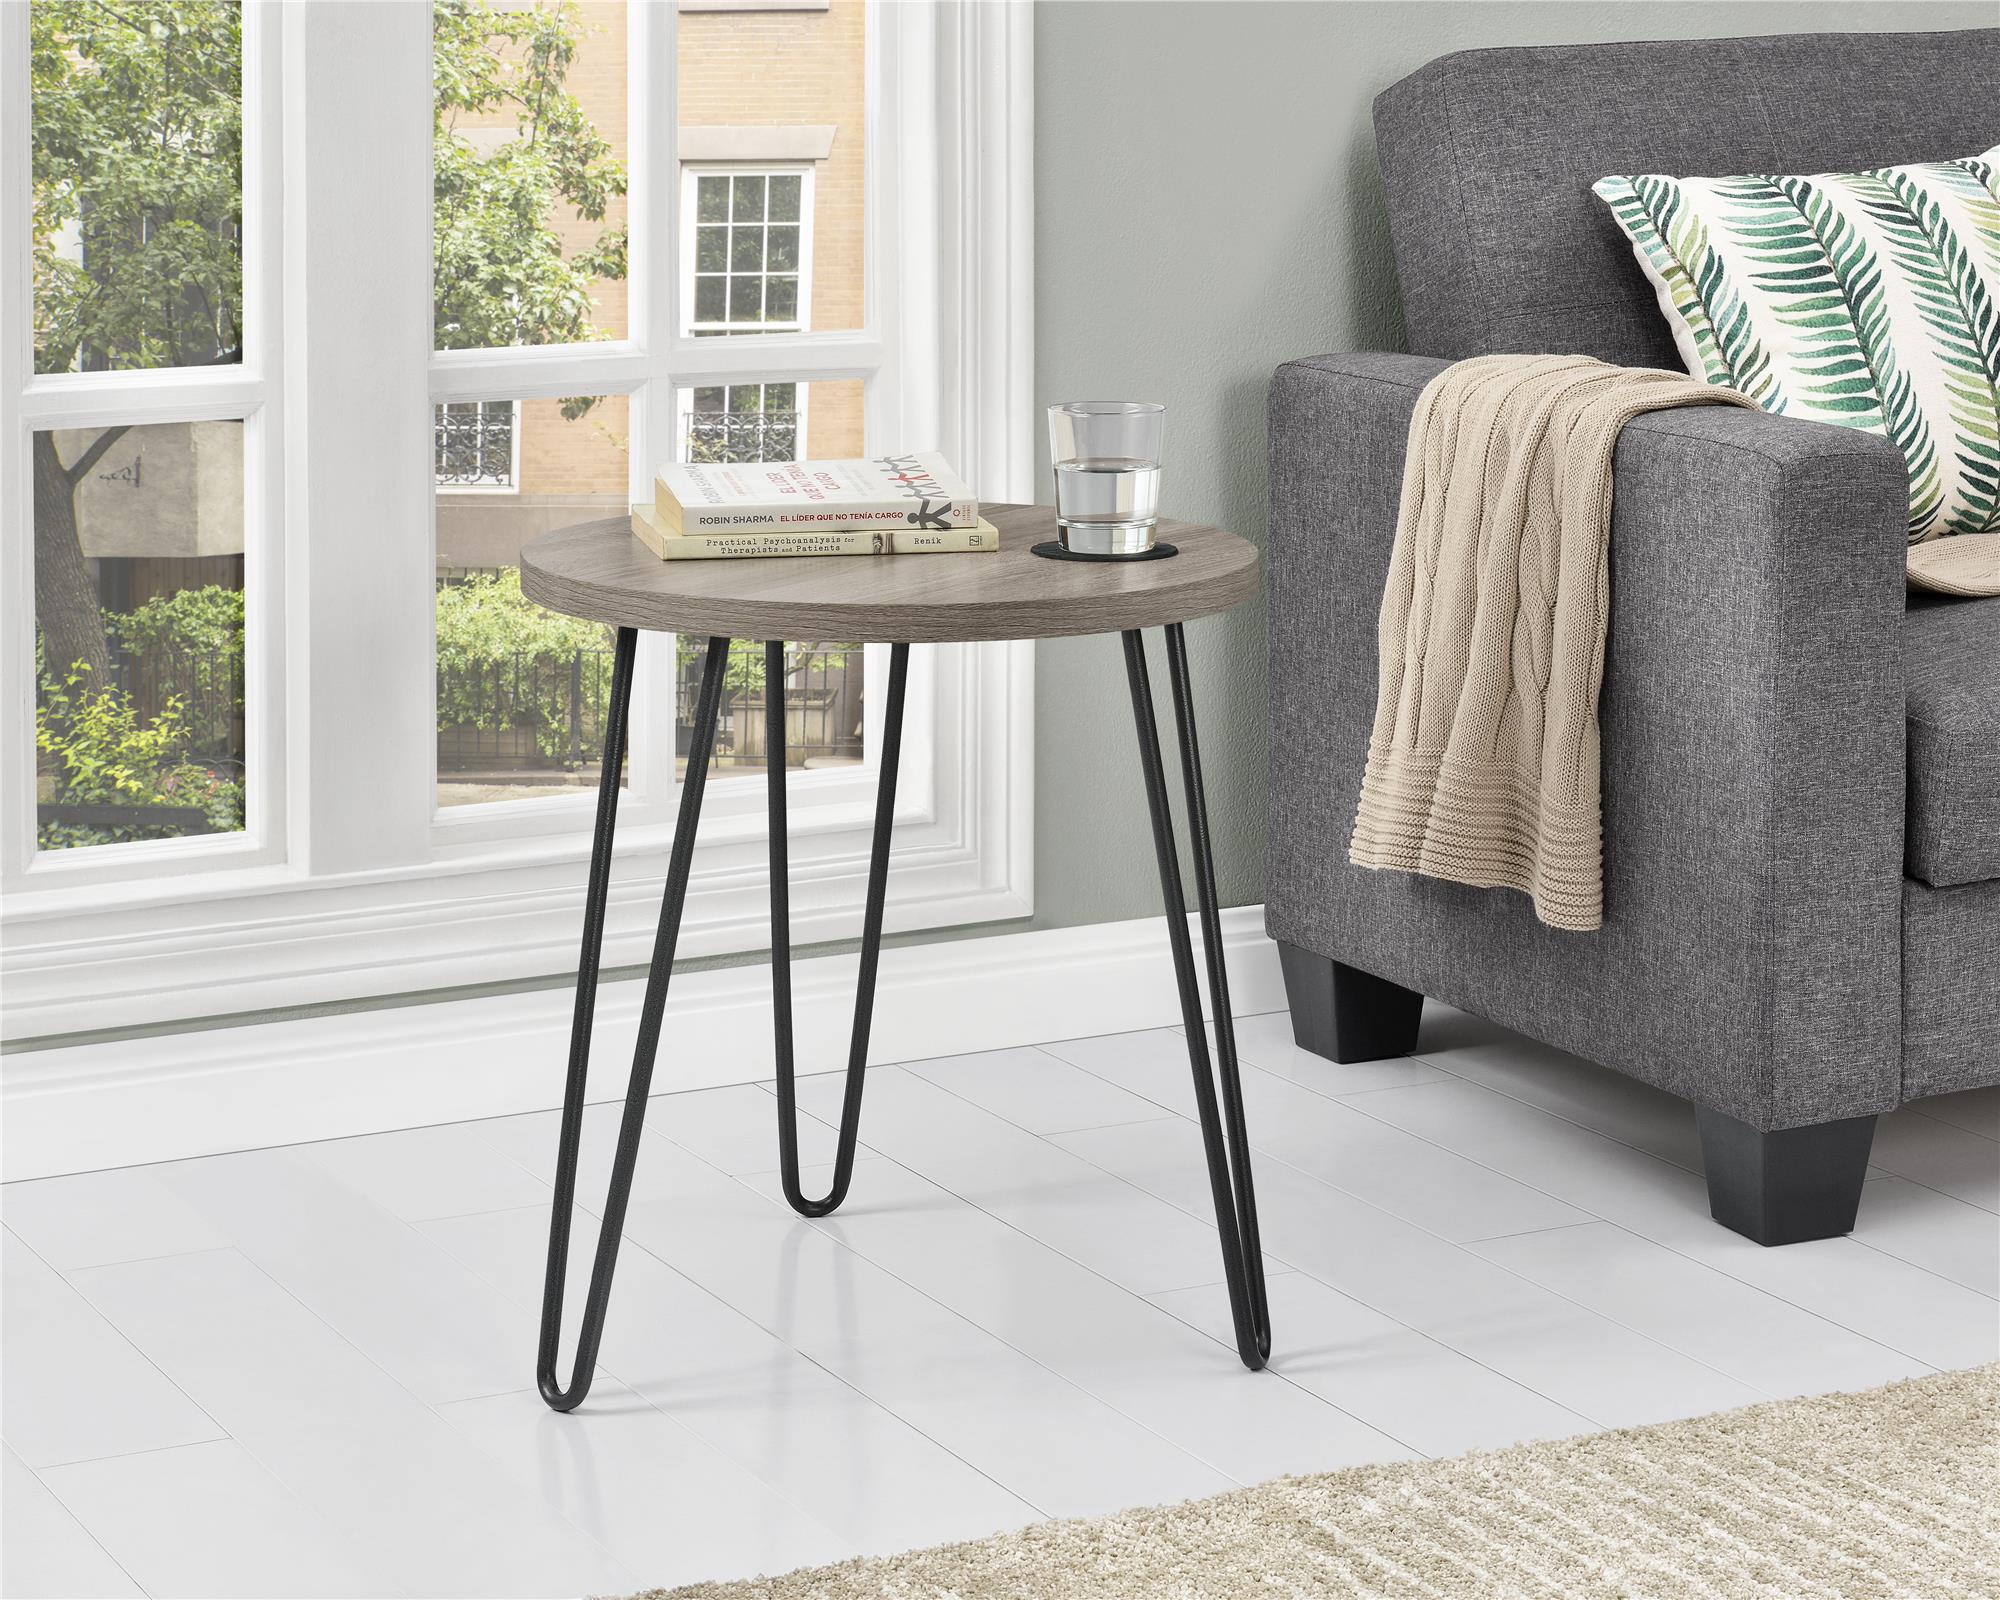 Ameriwood Home Owen Retro Round End Table, Multiple Colors by Ameriwood Home